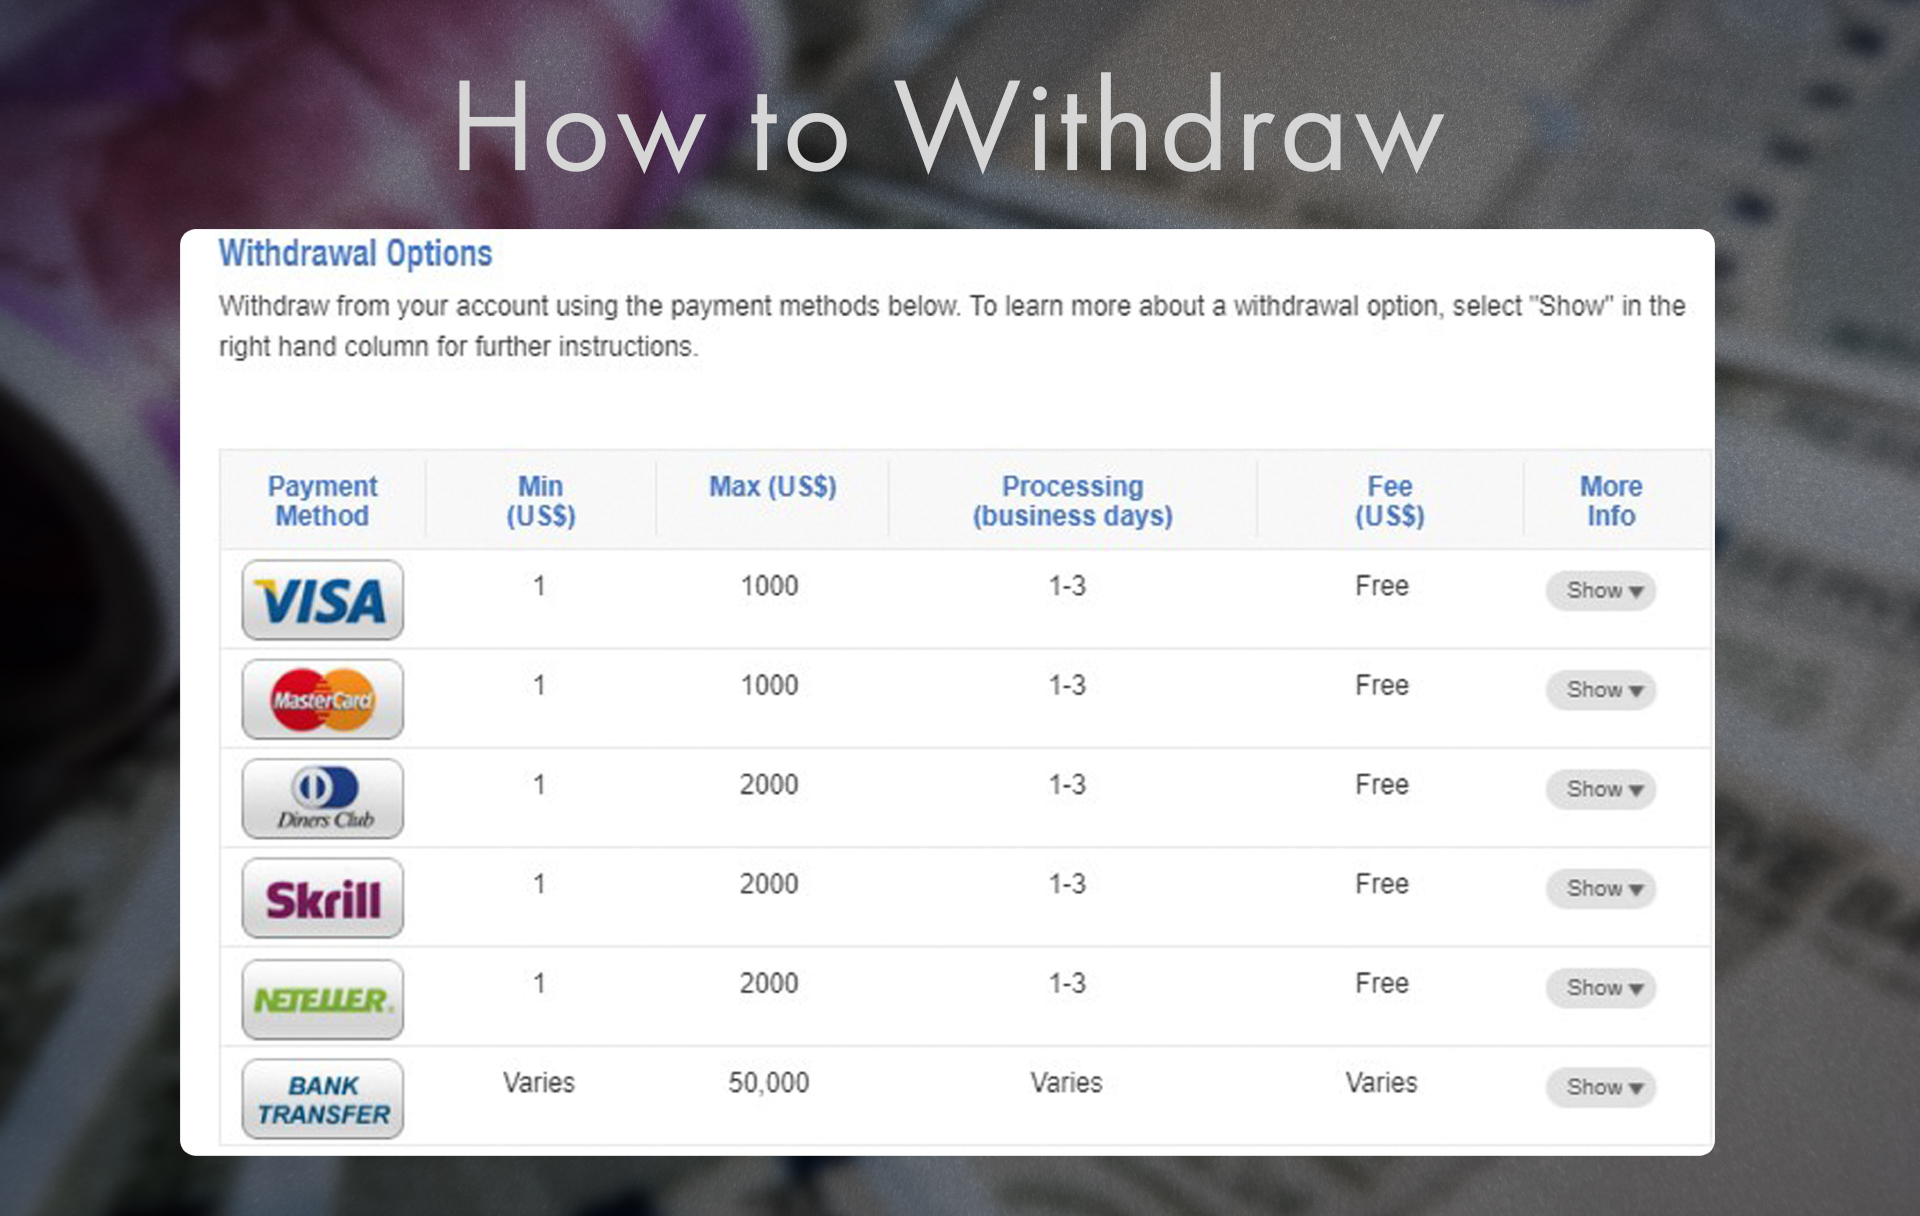 After you win you can withdraw money to a bank card or e-wallet.